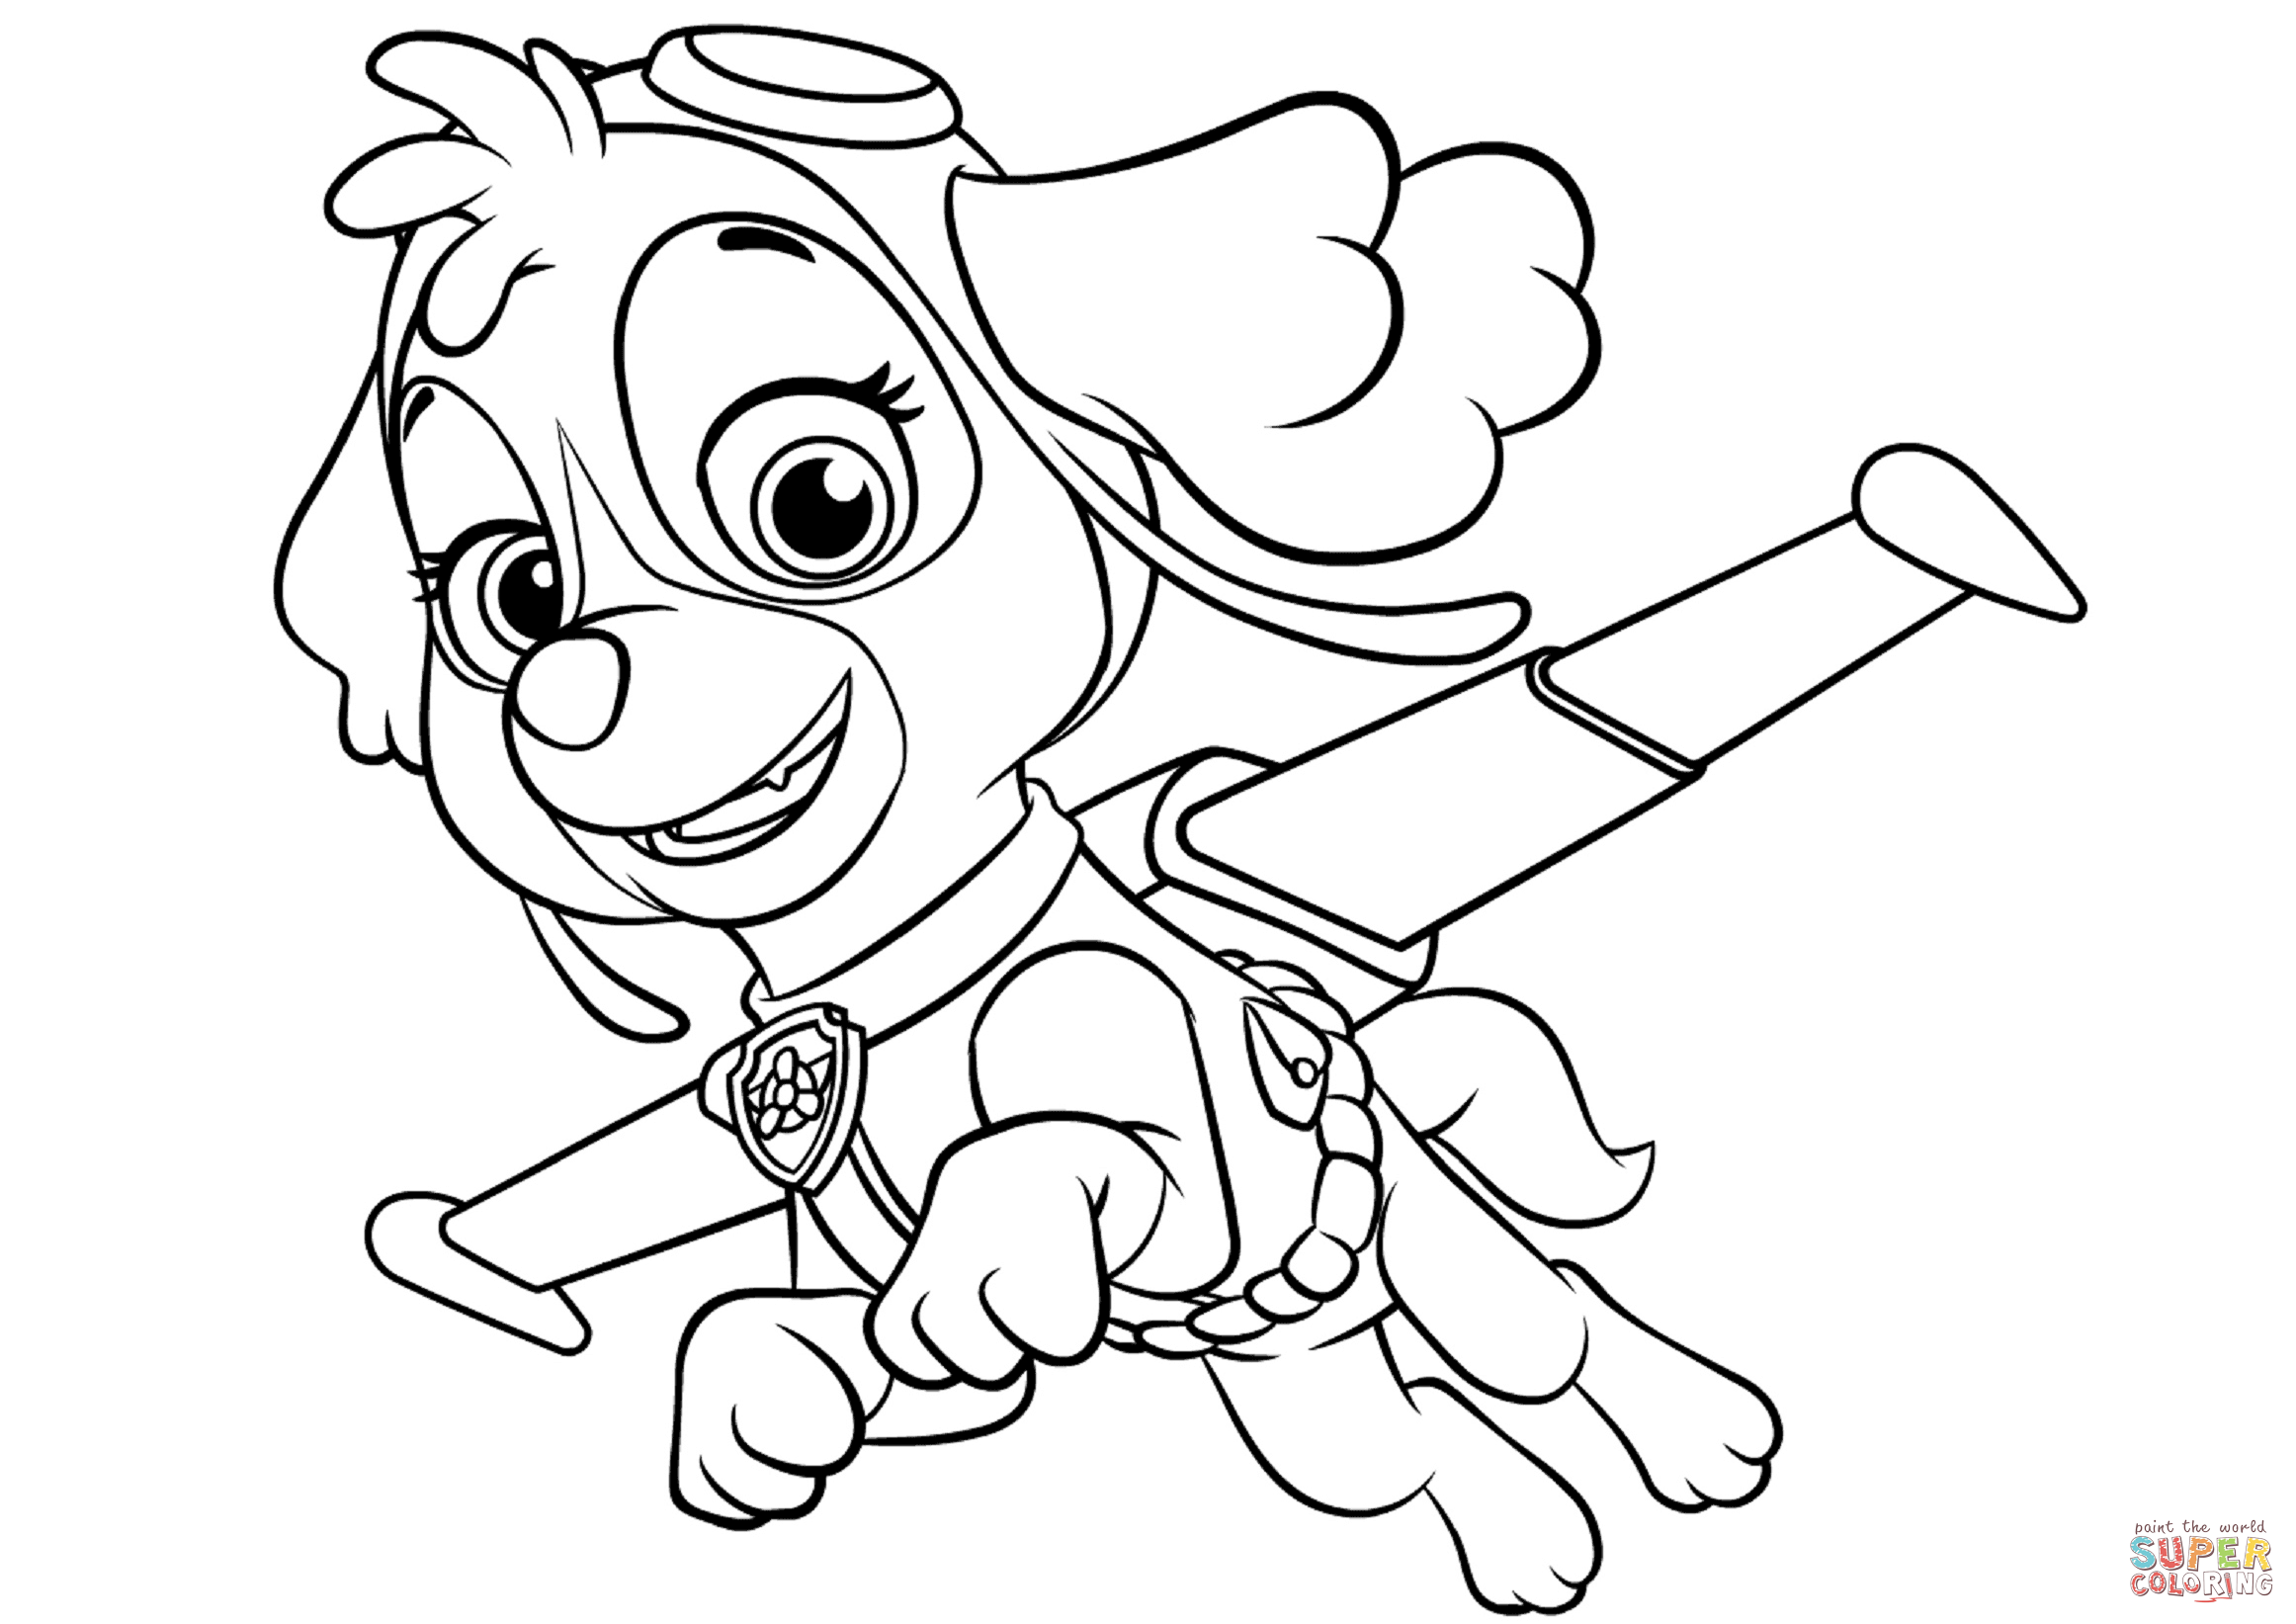 Flying coloring #5, Download drawings